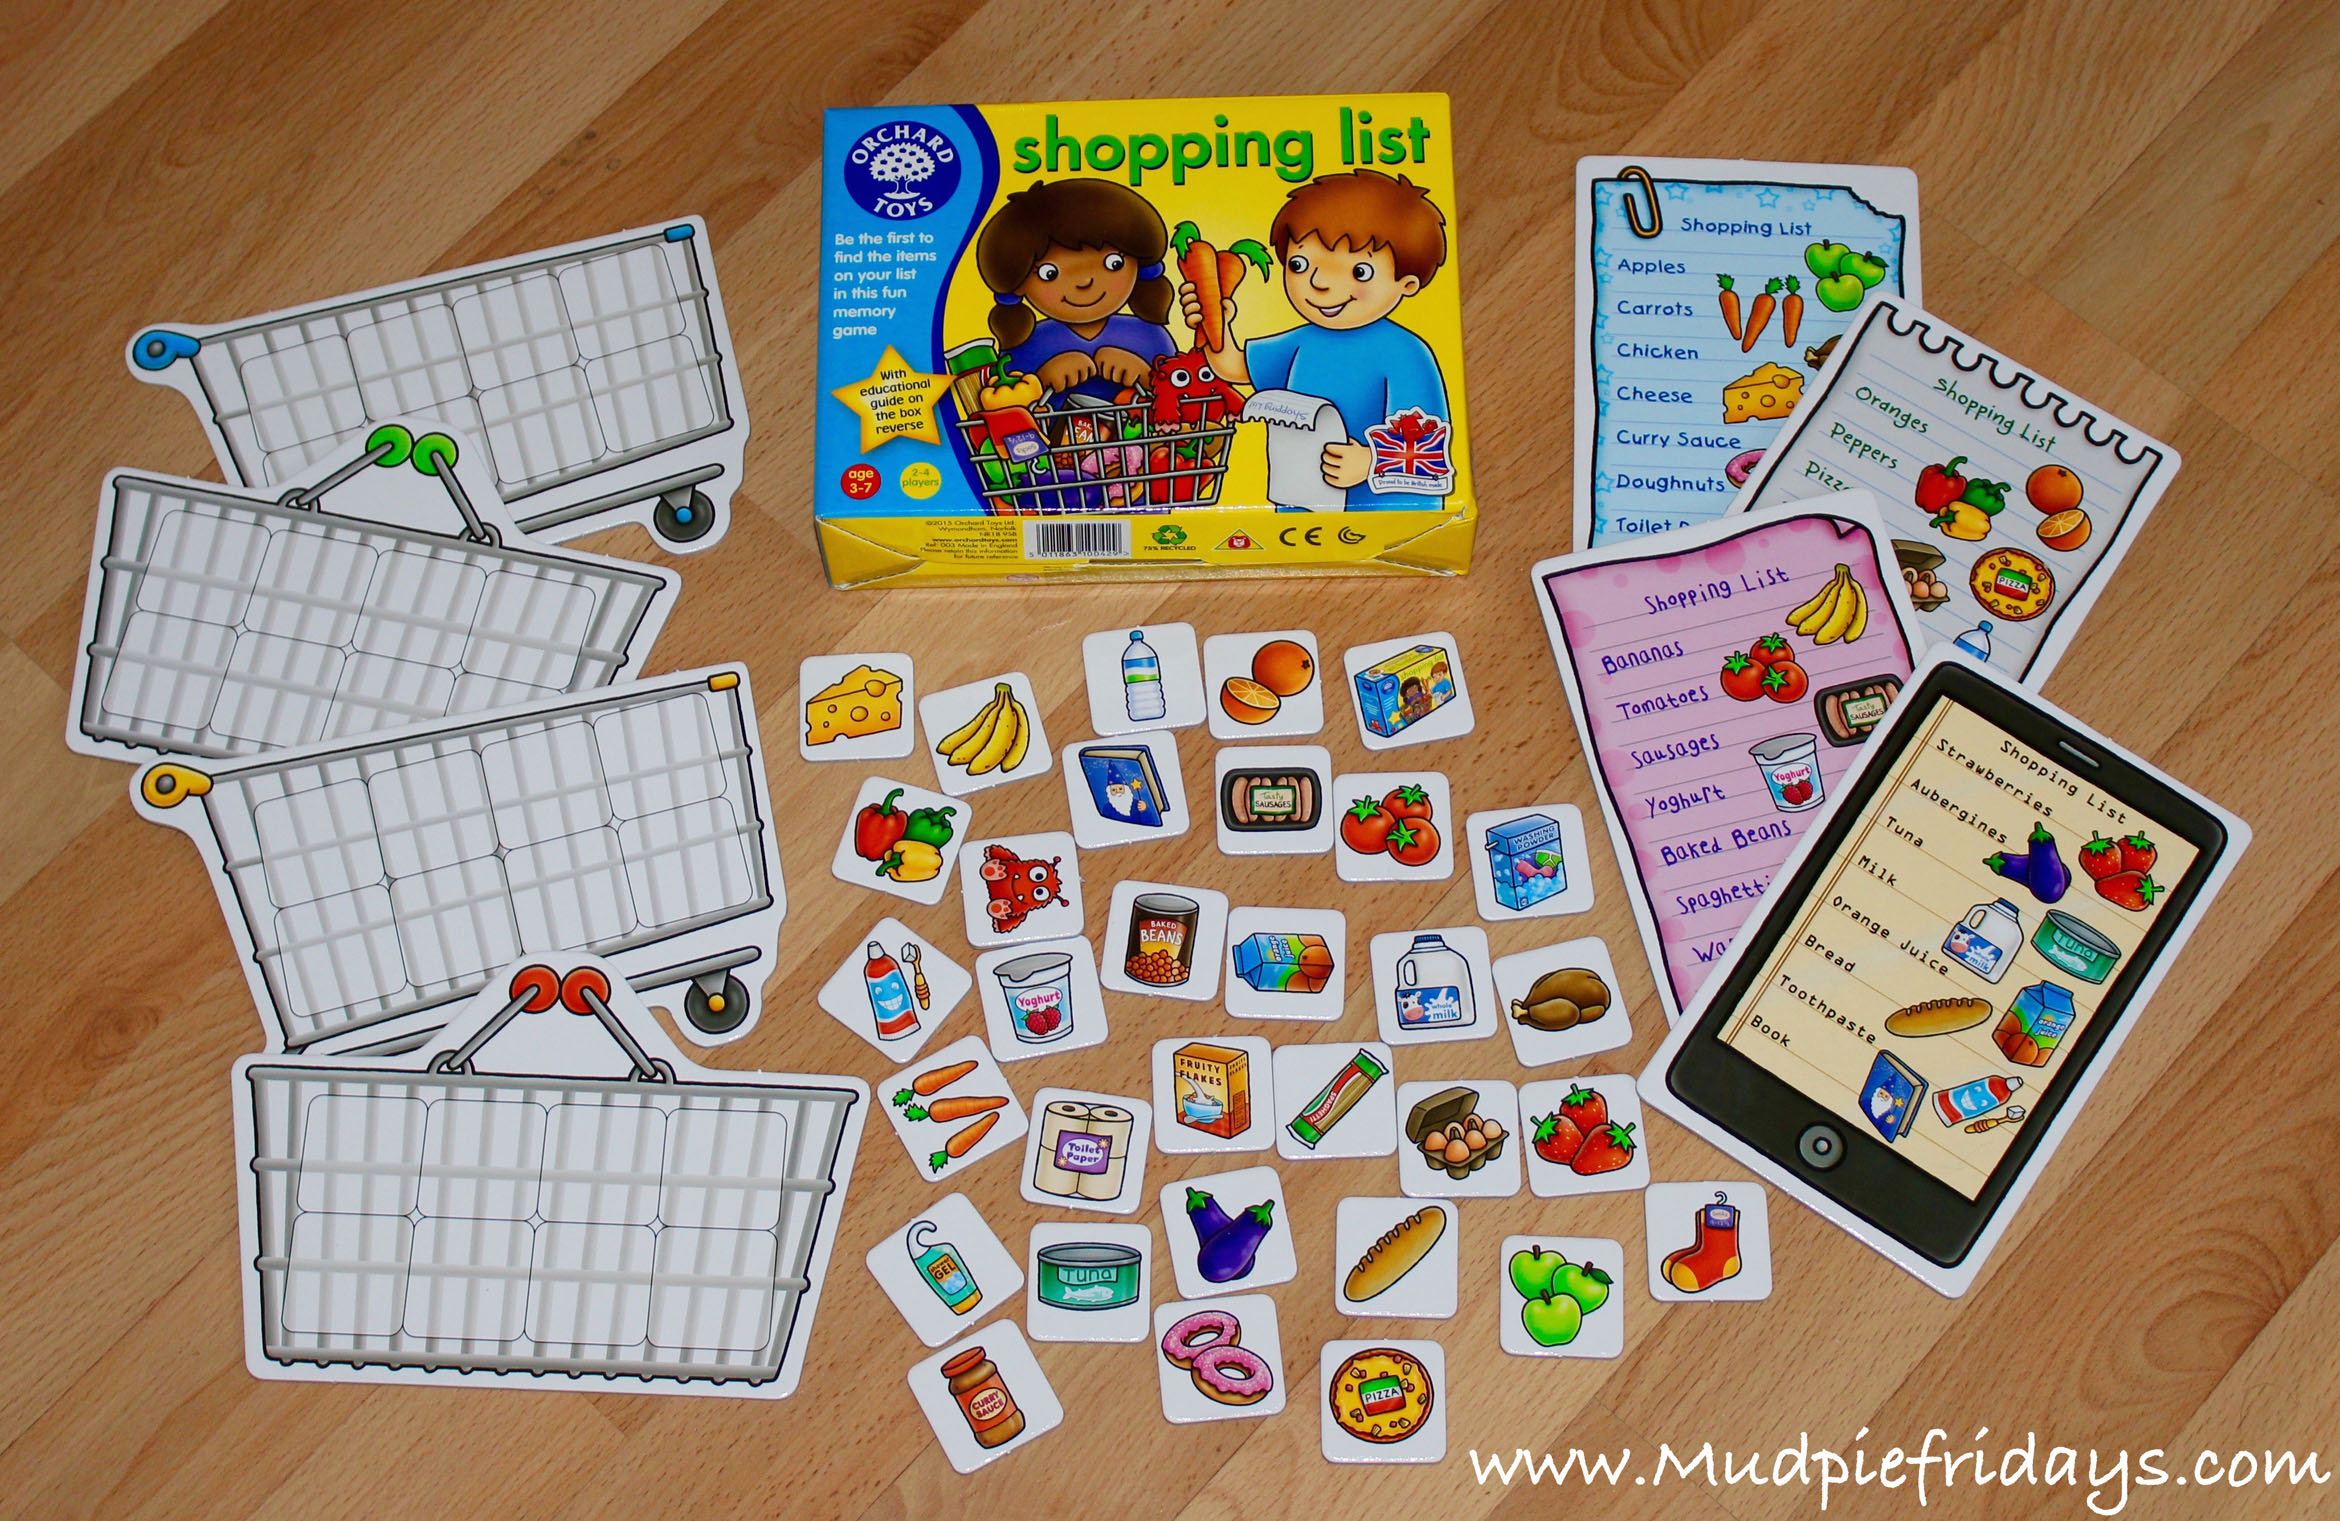 Orchard Toys Supermarket Game Review